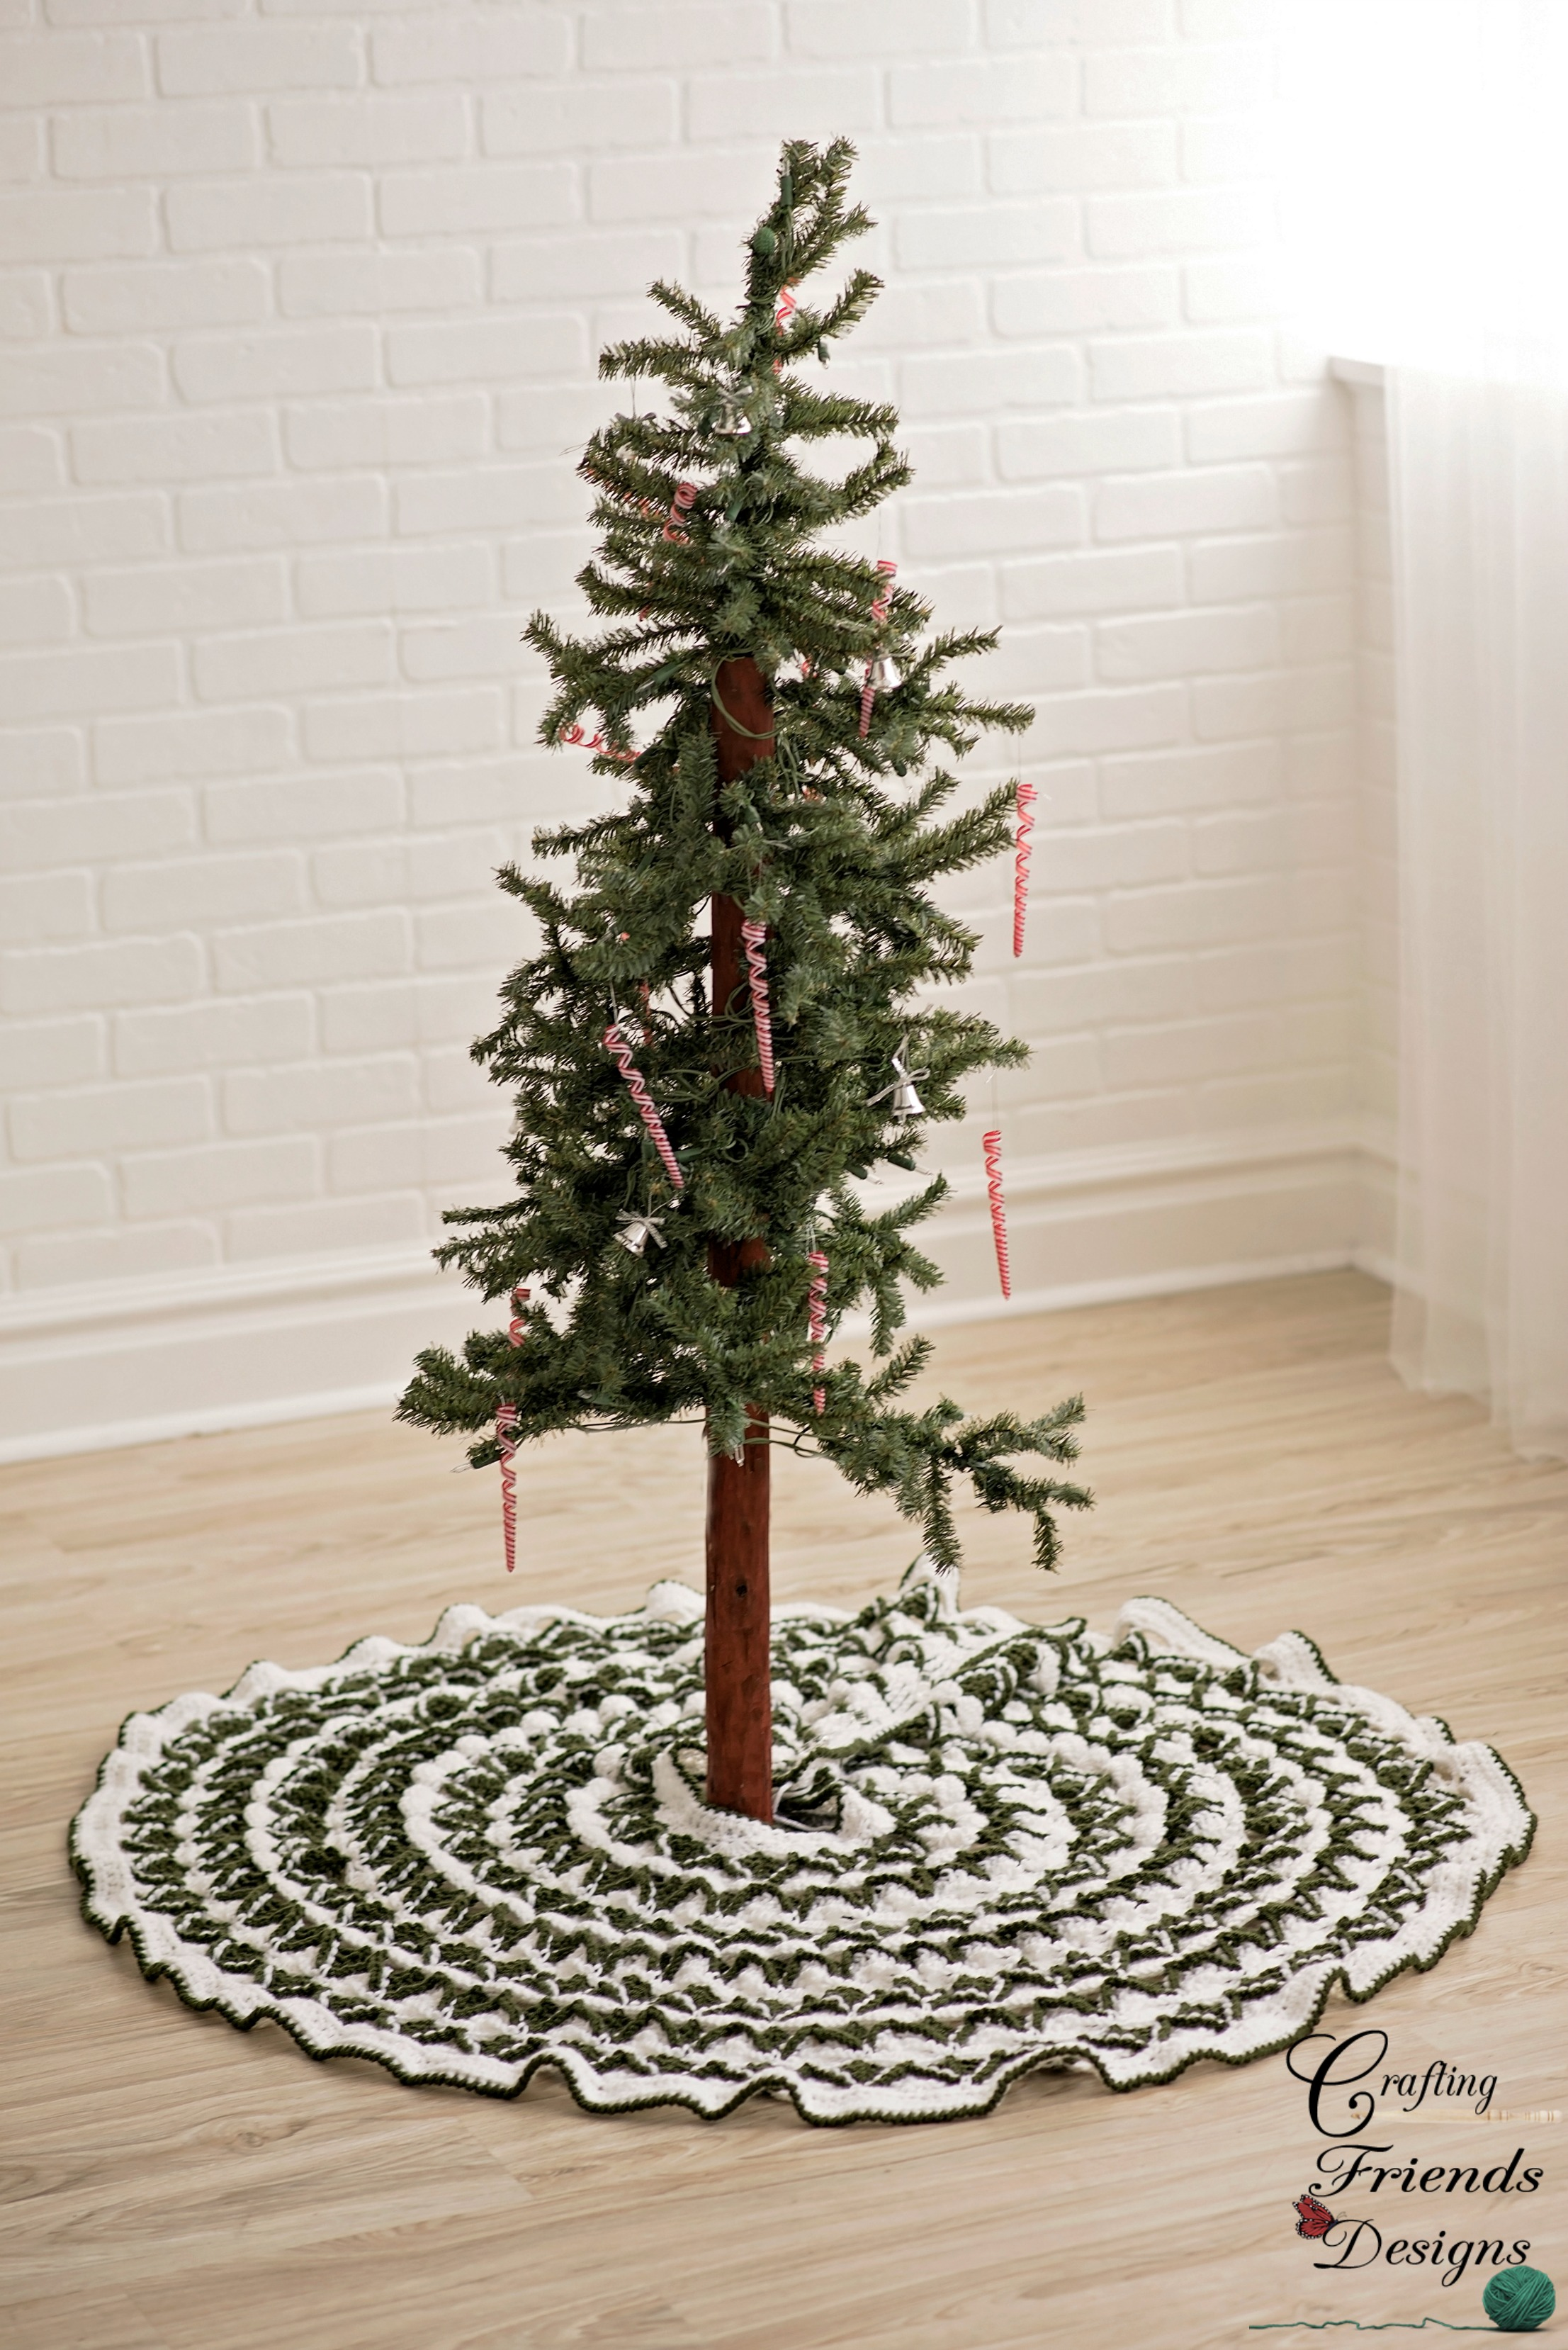 Crochet Xmas Tree Skirt : ... > Other Crochet Patterns > Christmas Pine Tree Skirt Crochet Pattern